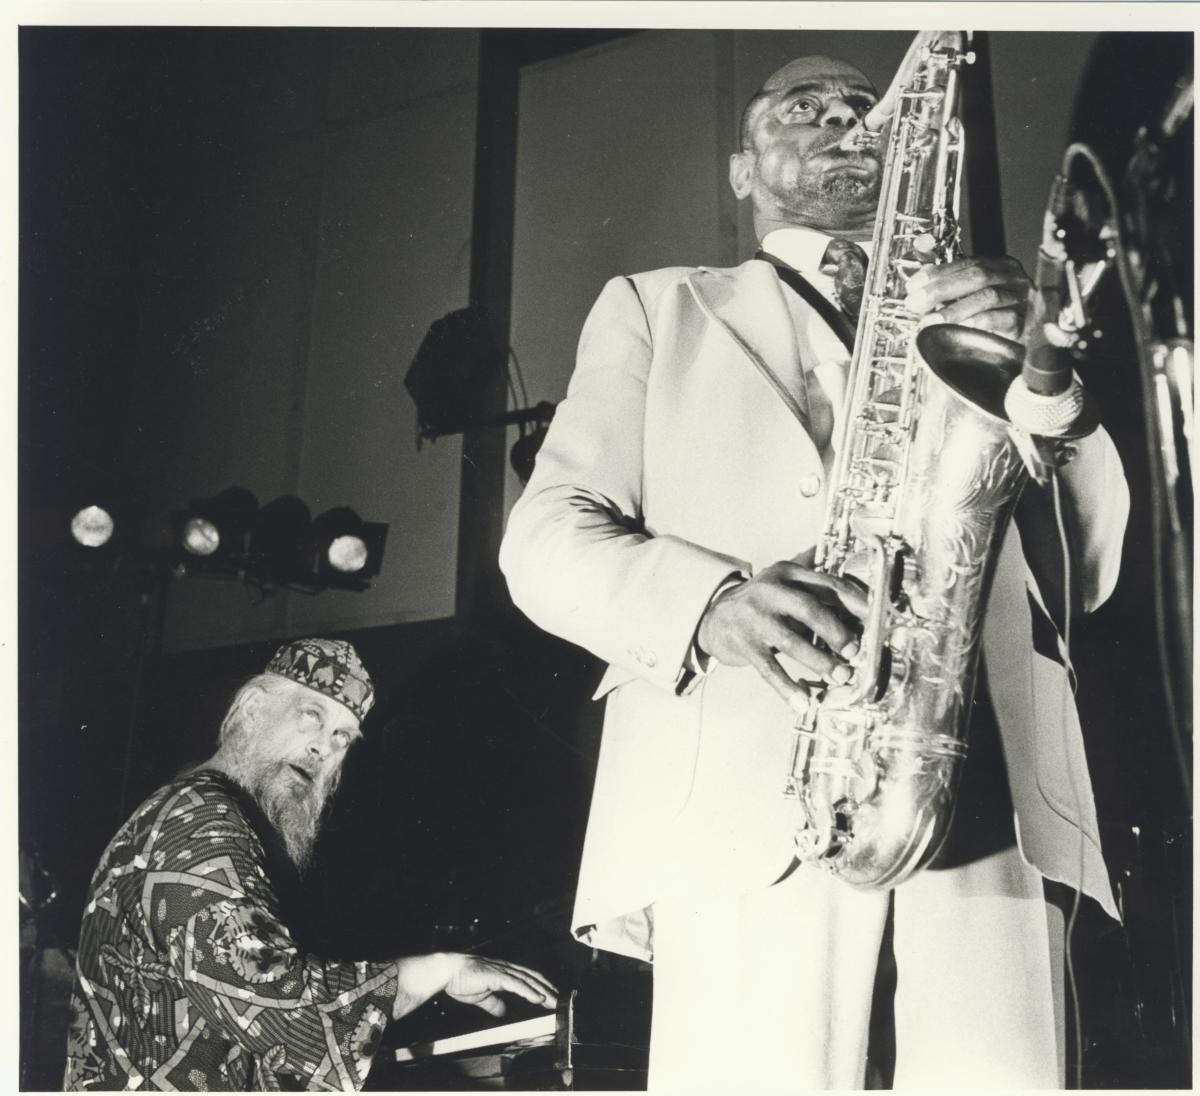 Chris McGregor with Archie Shepp, 1989